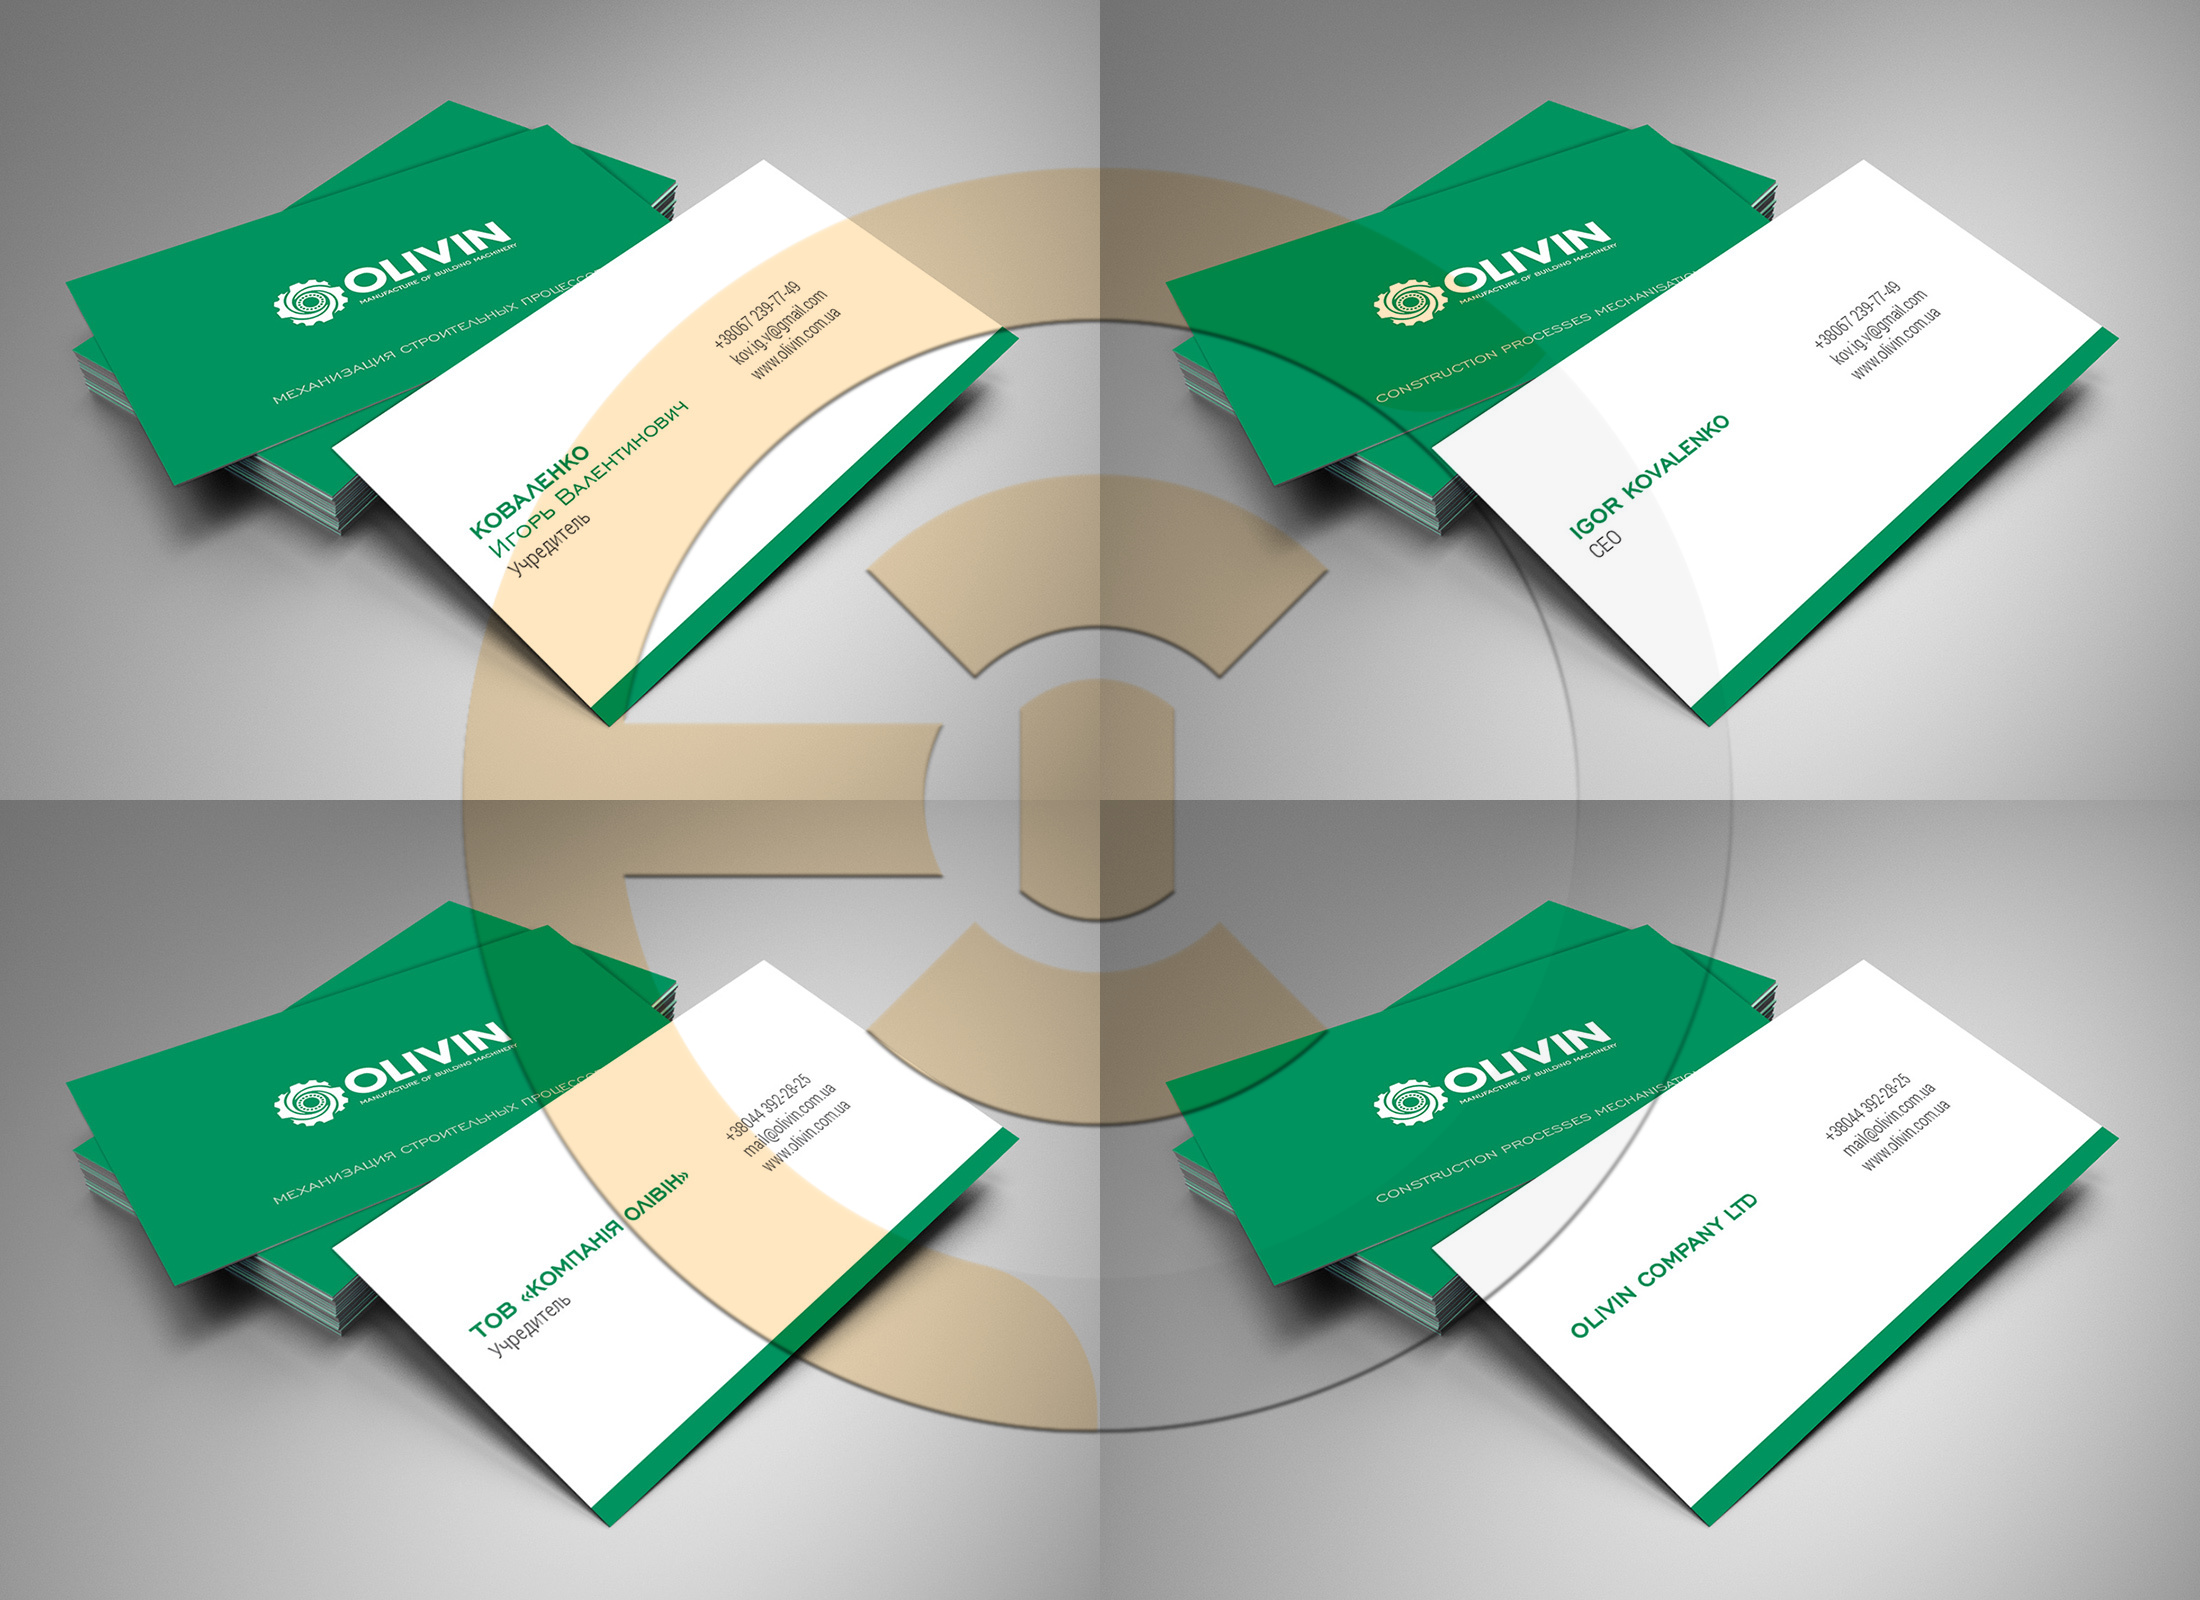 olivin-business-card-v3.jpg